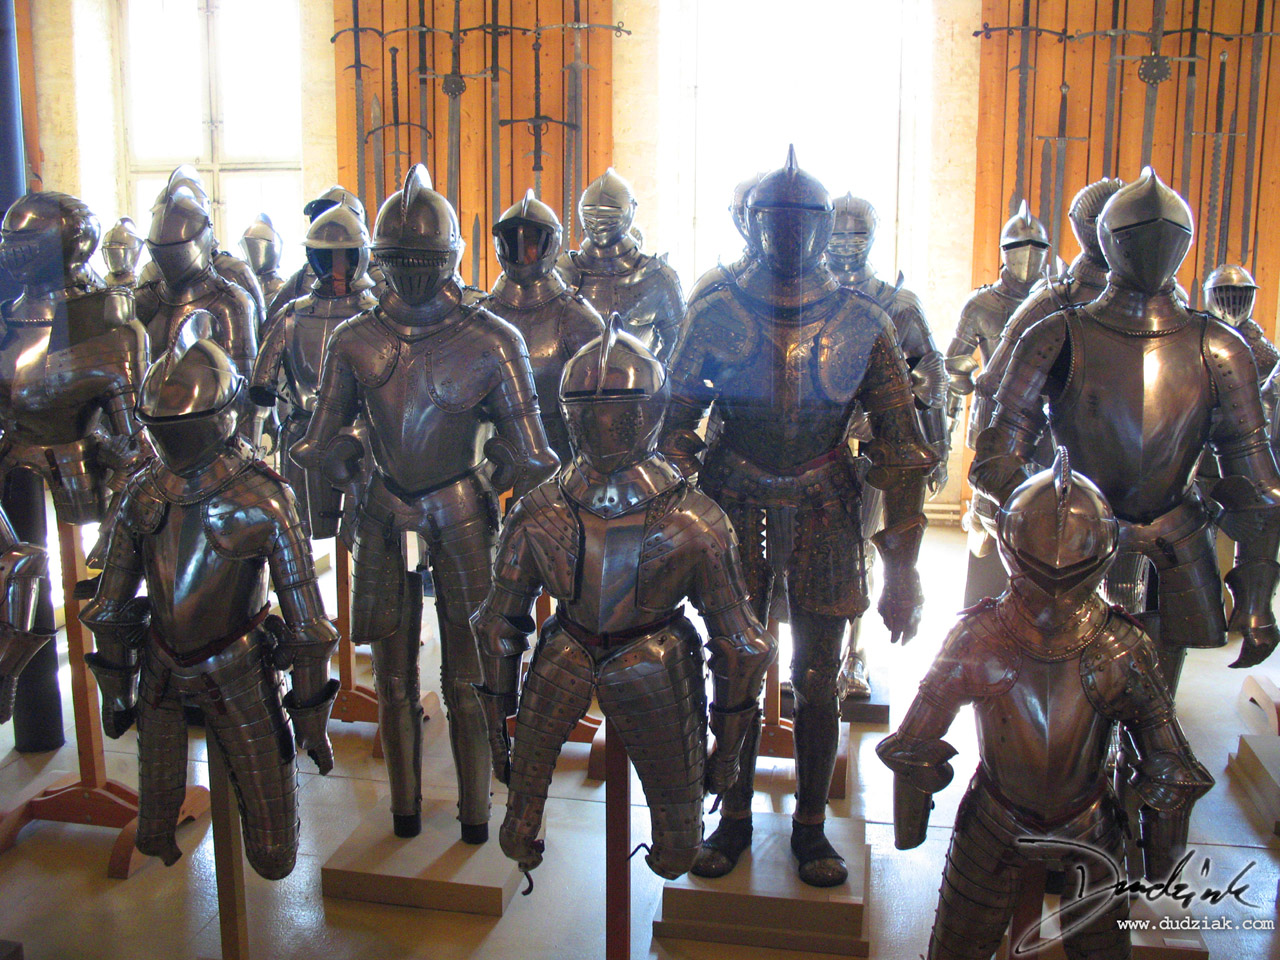 Paris France,  french armor,  Military Museum,  Les Invalides,  french knights,  armor